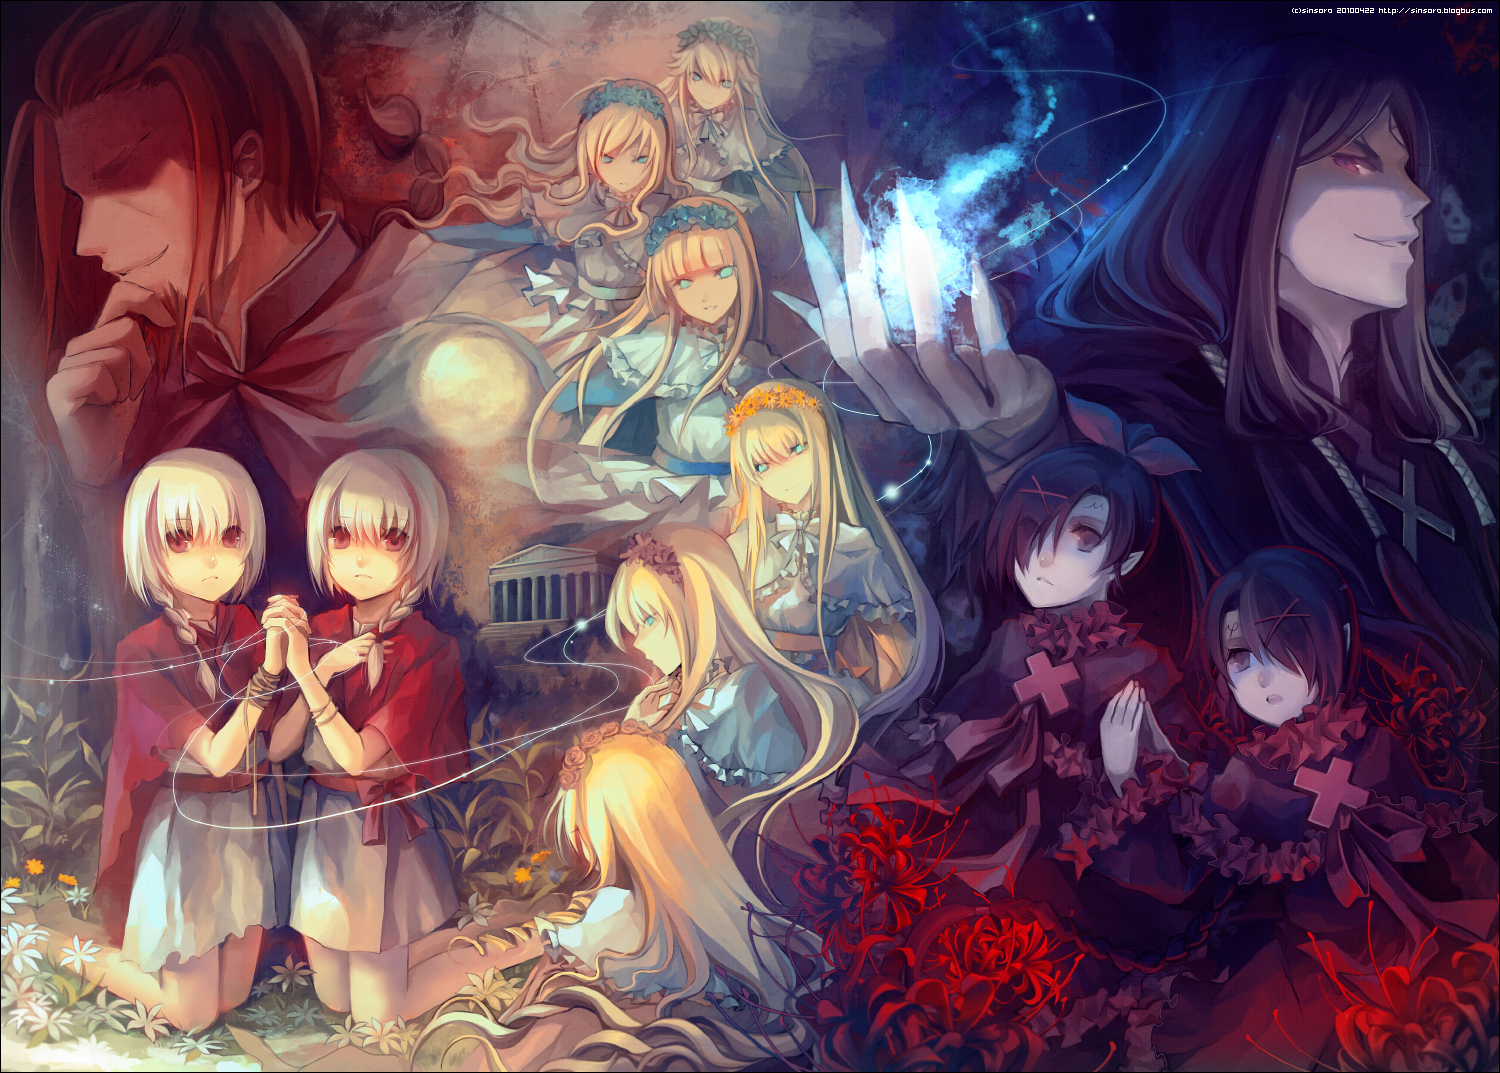 Anime Girls Wallpapers Pack 22 04 12